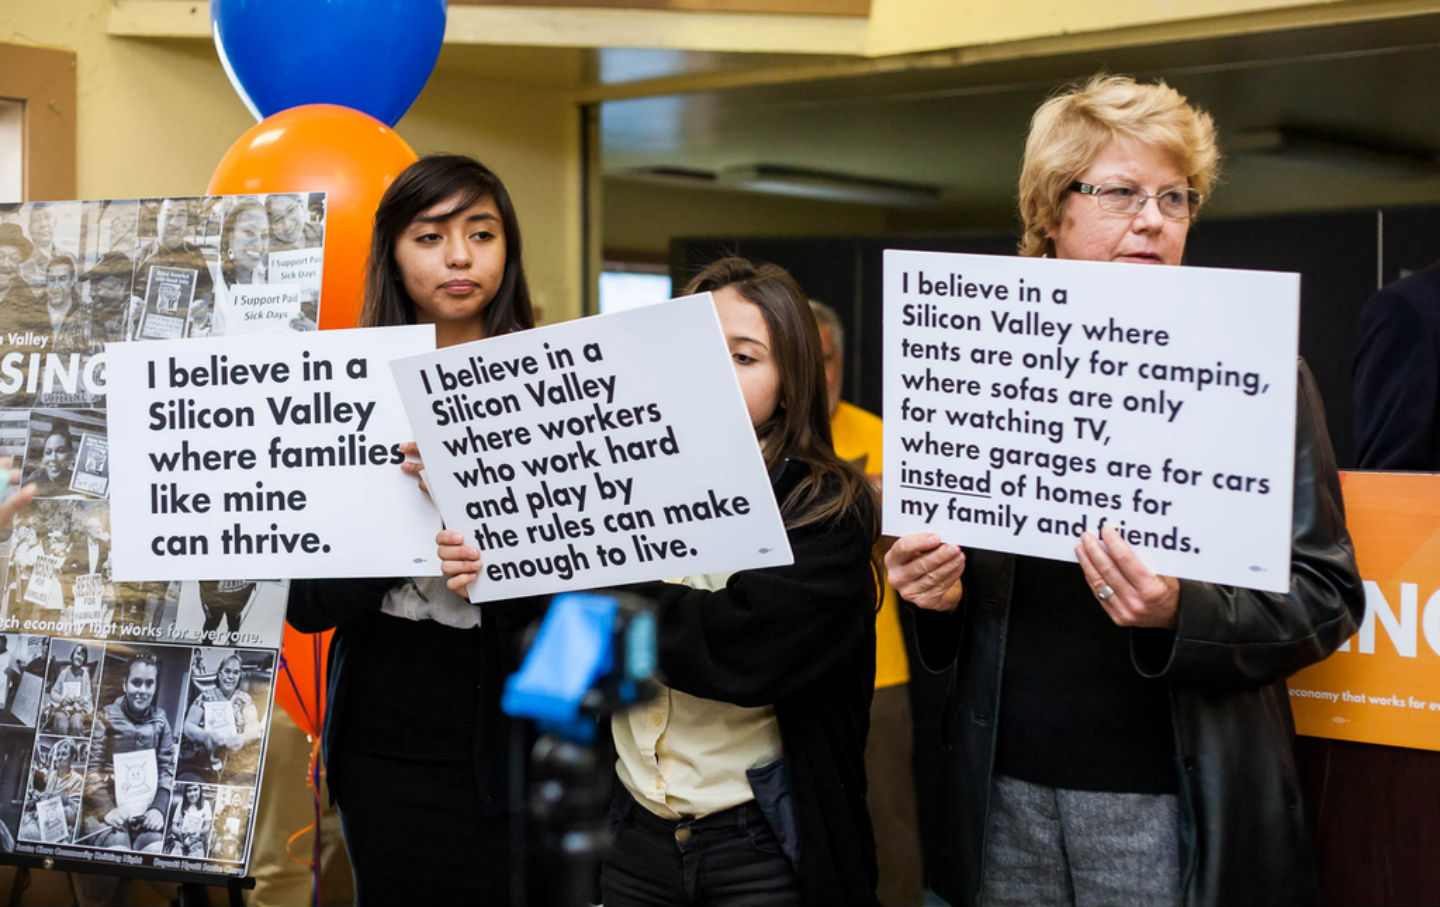 How to Get a Tech-related Job in Silicon Valley?